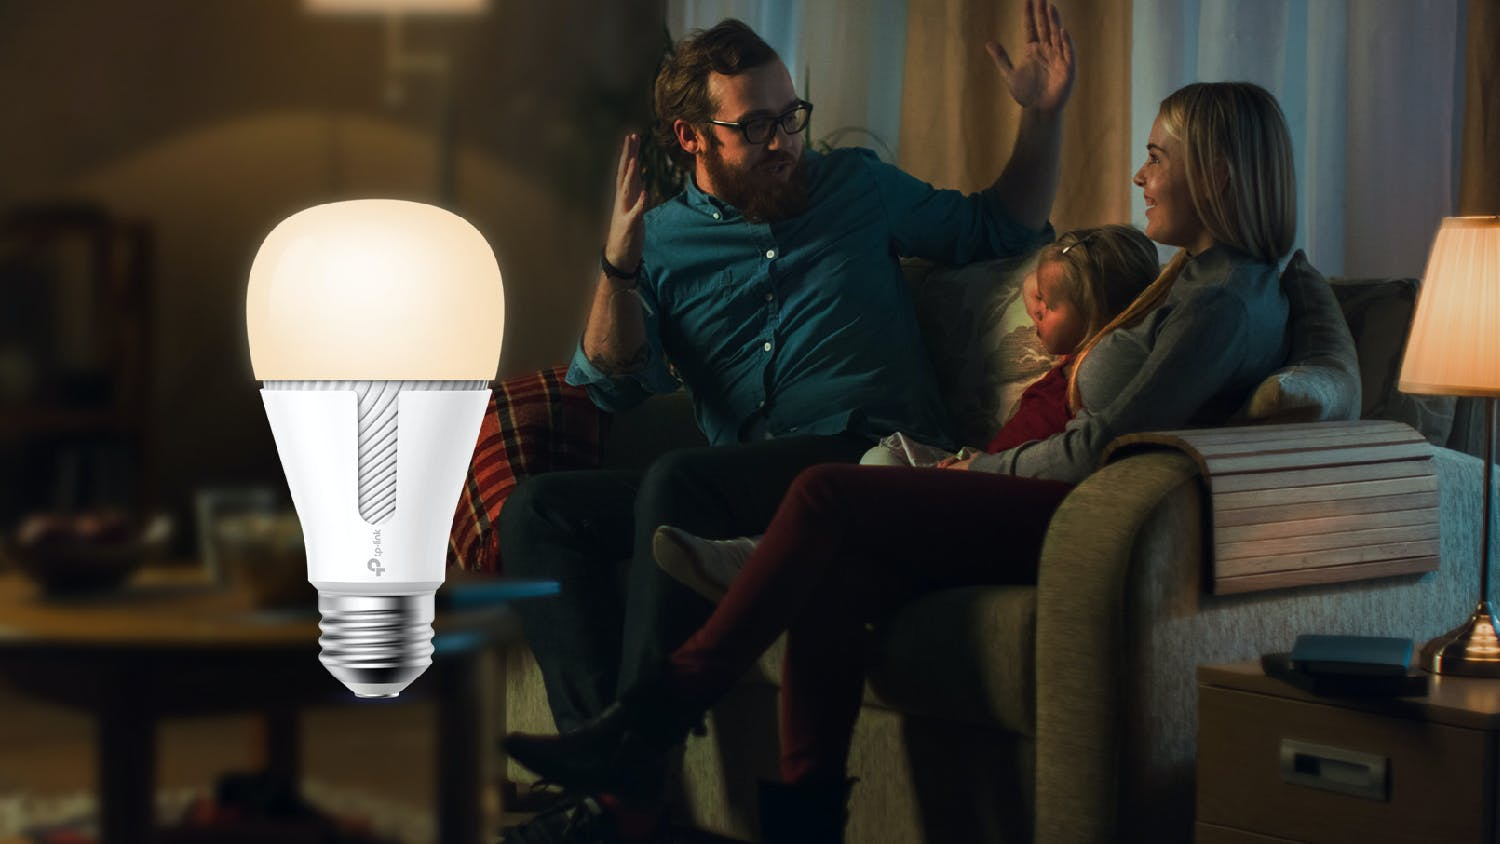 TP-Link Kasa KL110 Smart Wi-Fi Light Bulb Dimmable Screw